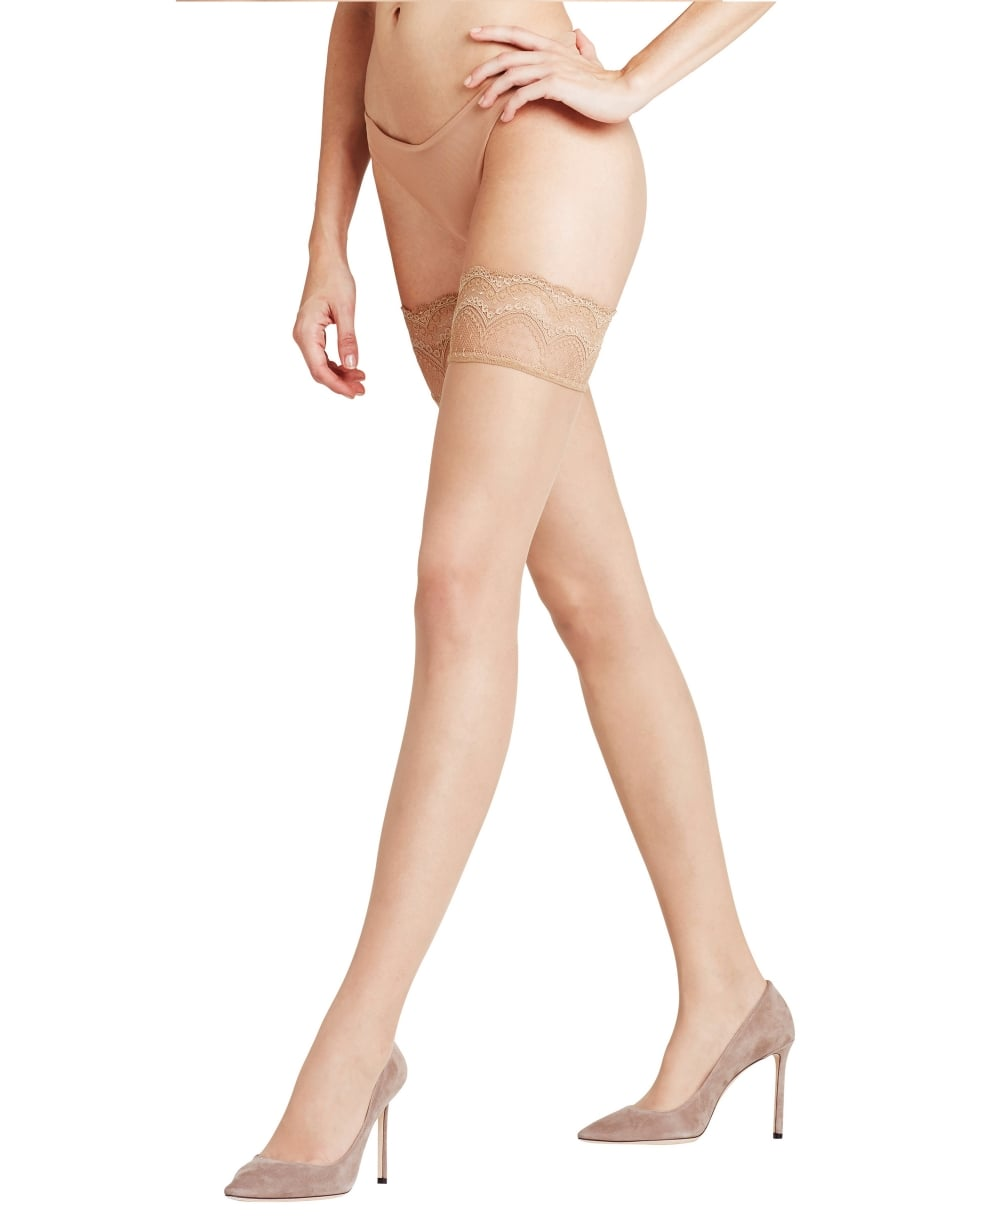 927ef38166caf Falke Invisible Deluxe 8 Denier Stay-Ups with Lace band - Hold-Ups ...